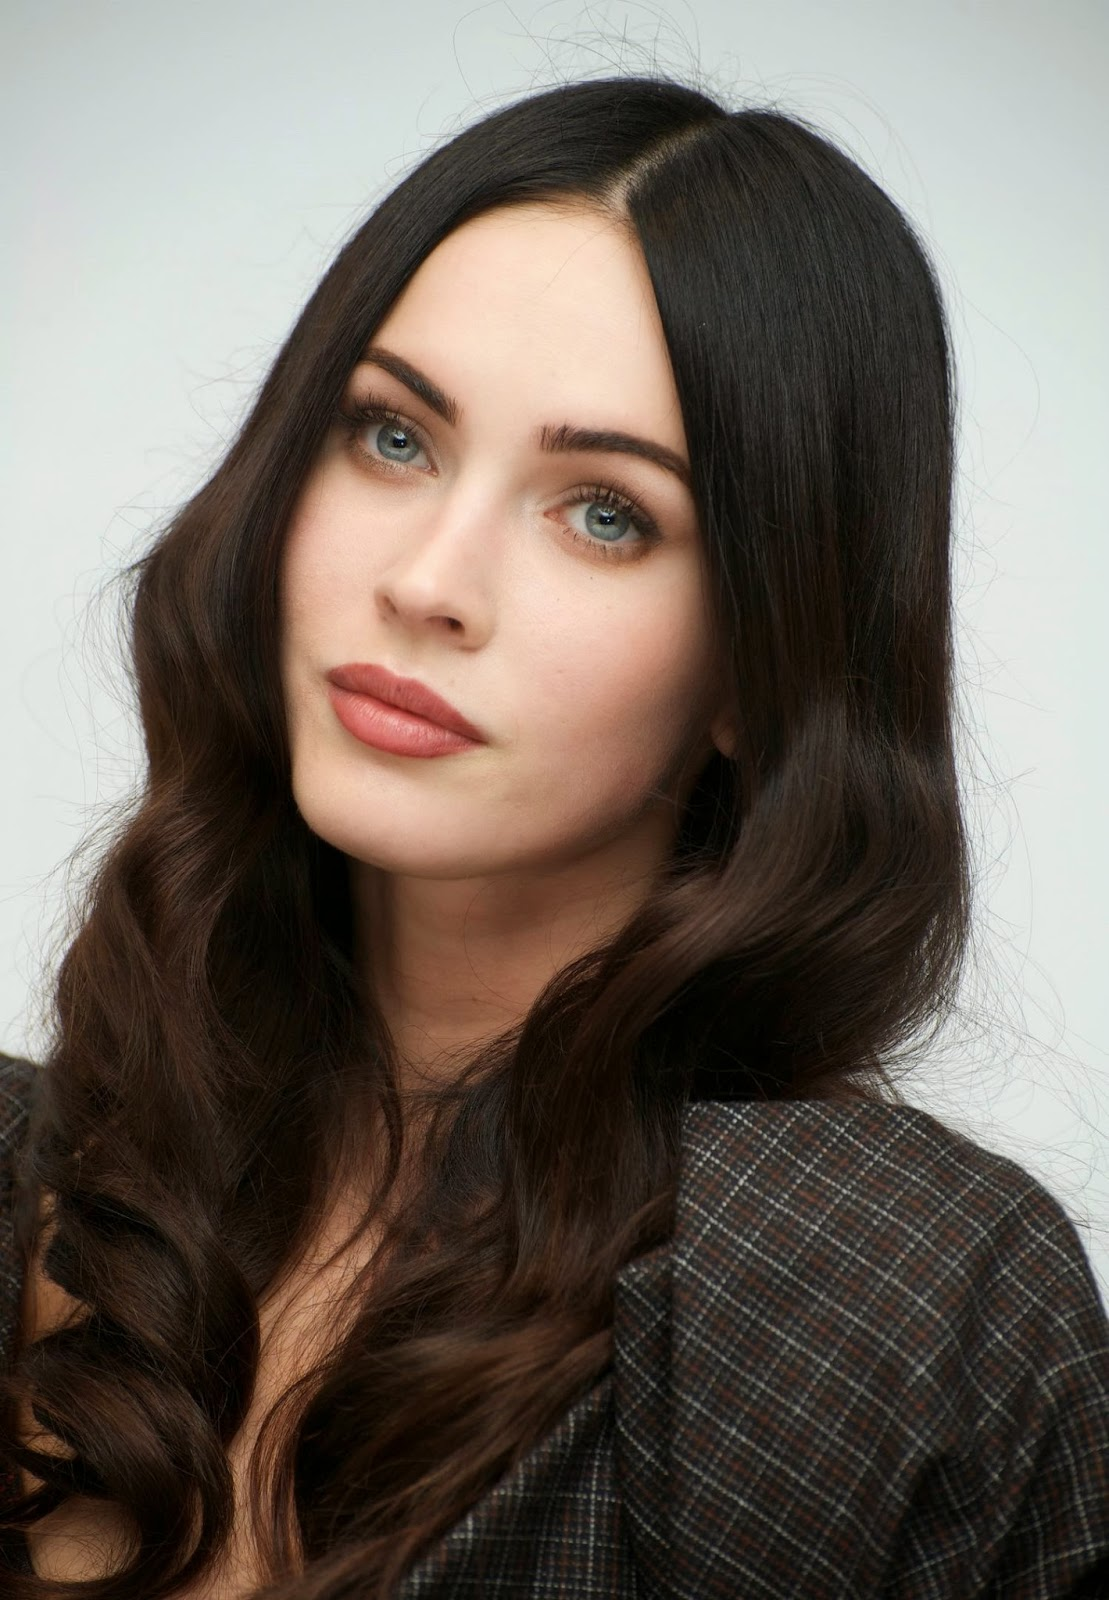 megan fox hd wallpapers free download - lab4photo